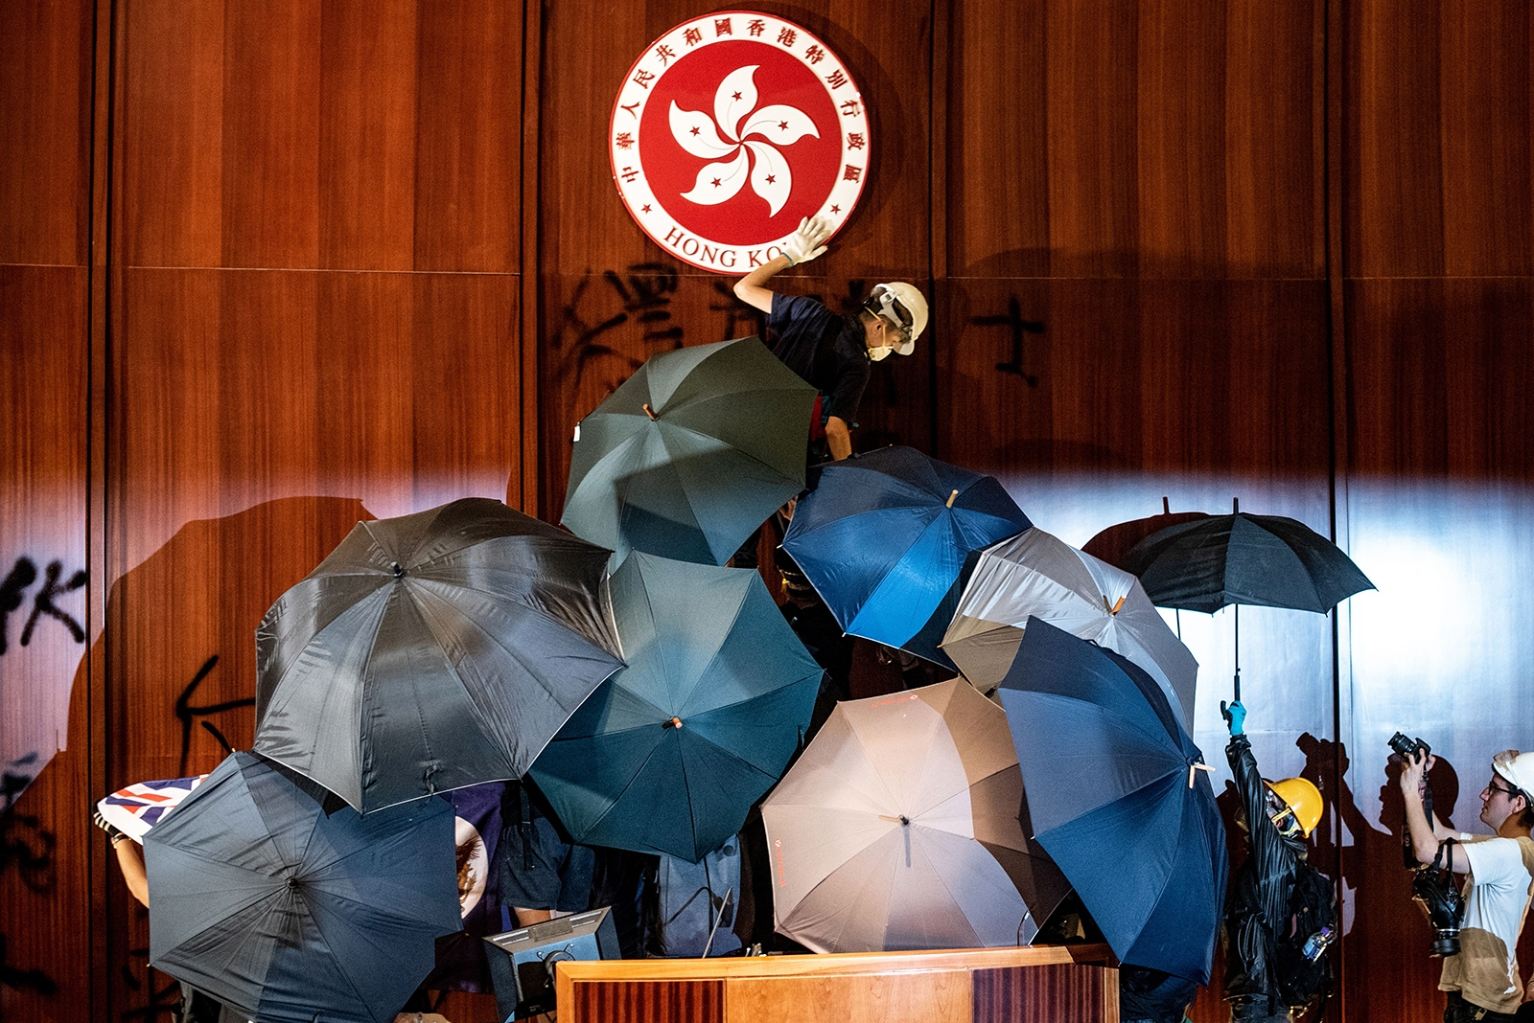 A protester defaces the Hong Kong emblem after protesters broke into the government headquarters in Hong Kong on July 1.  PHILIP FONG/AFP/Getty Images